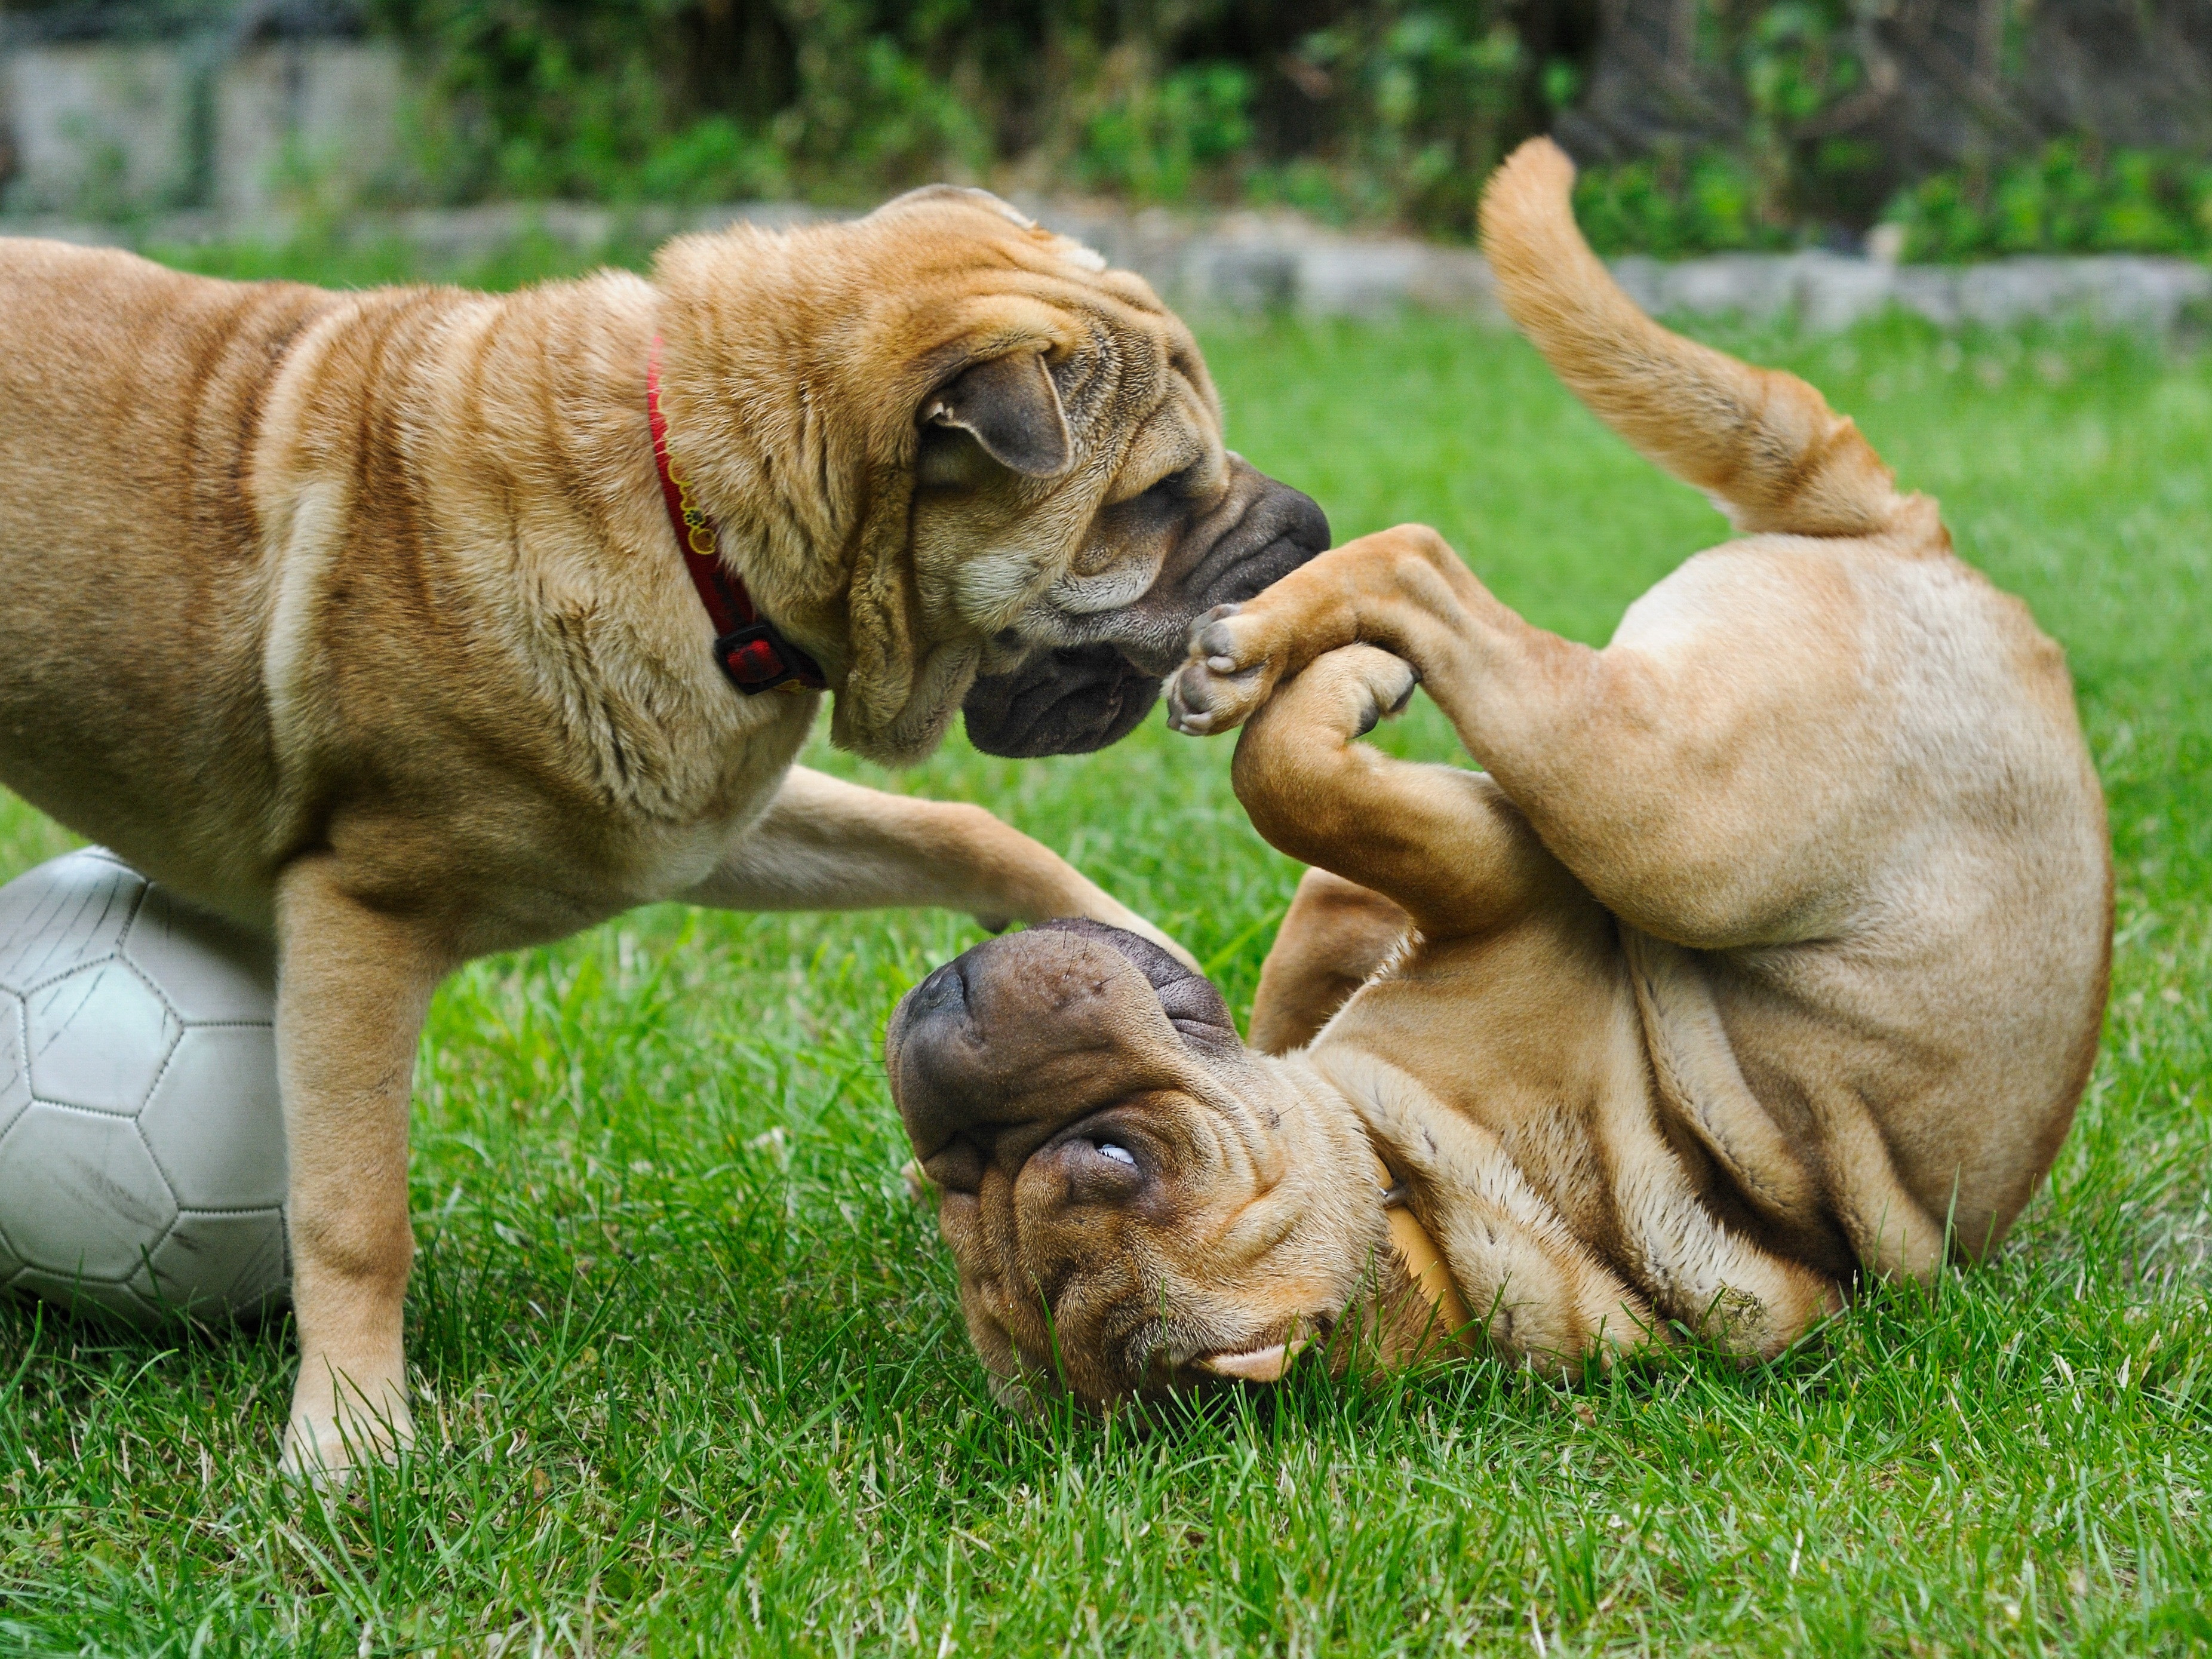 110715 download wallpaper Animals, Shar Pei, Dogs, Playful, Puppies screensavers and pictures for free